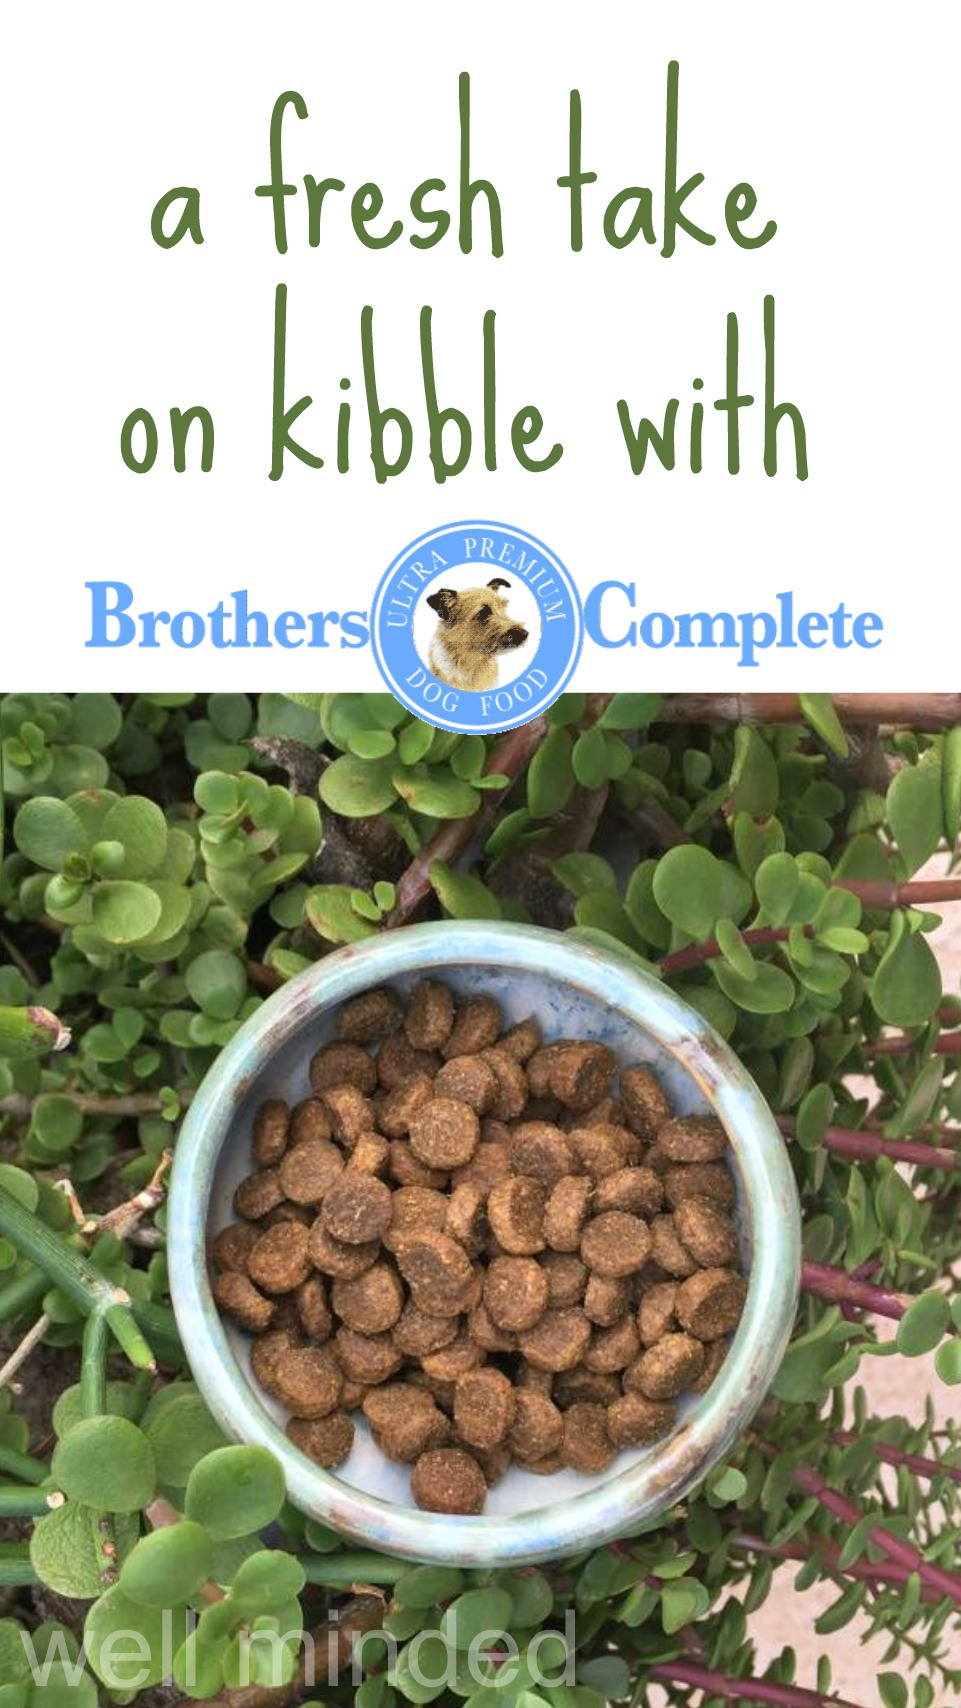 Brothers Complete offers a fresh take on kibble. wellmindedpets.com